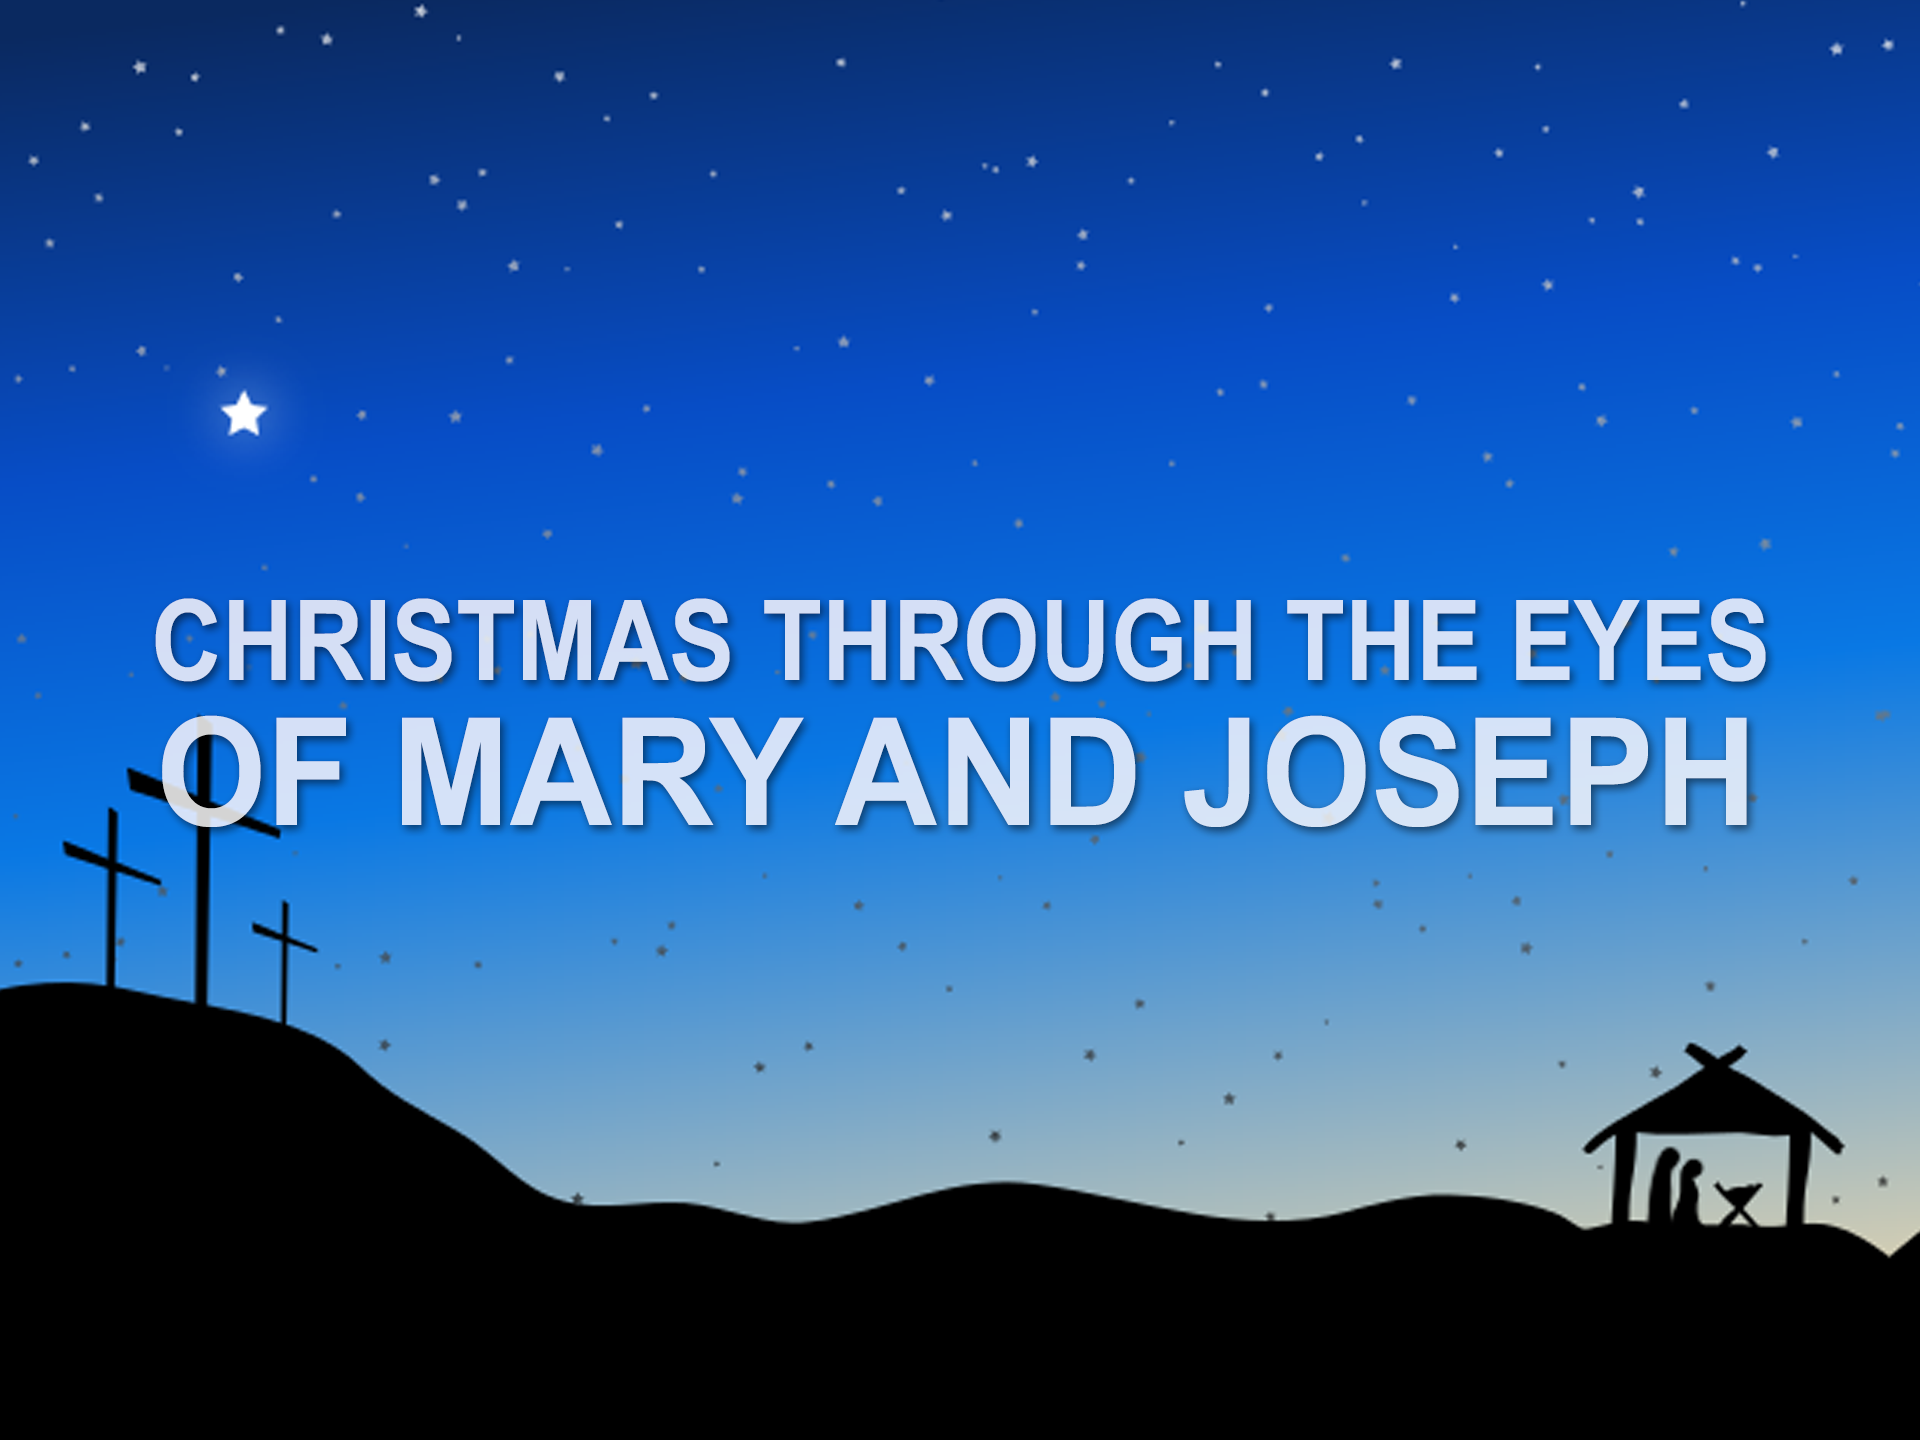 20181223 Christmas Through The eyes of mary and joseph.png